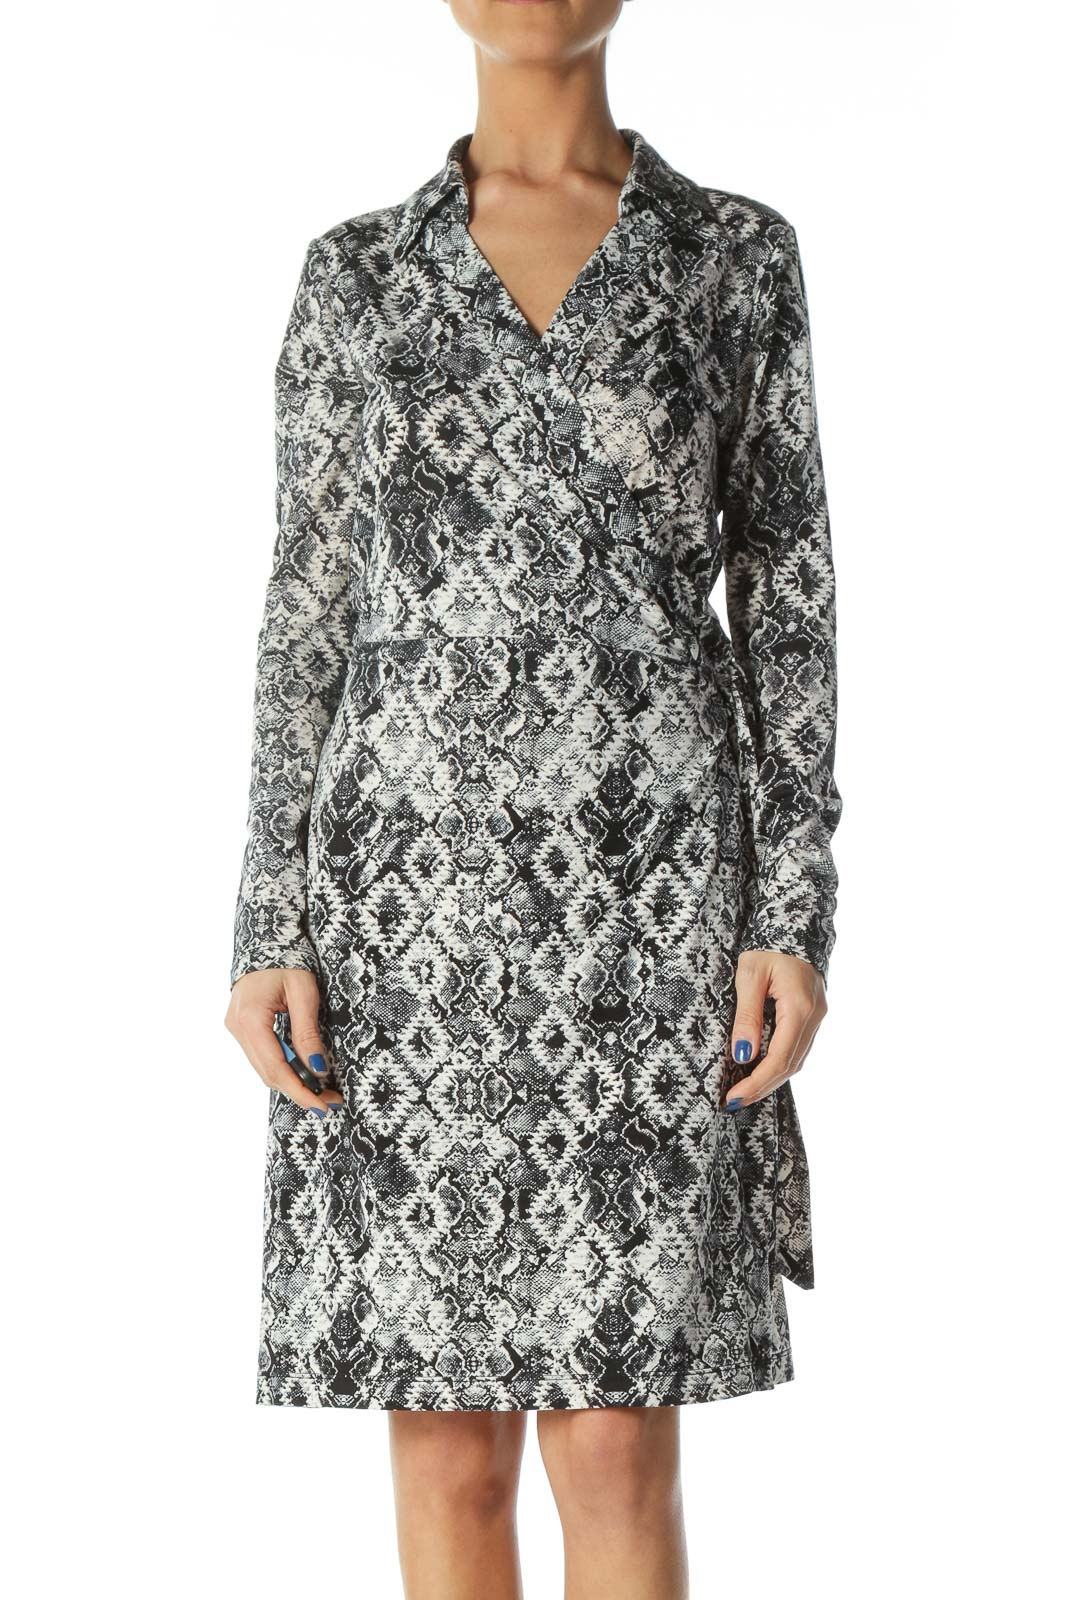 Black and White Snake Skin Print Wrap Dress